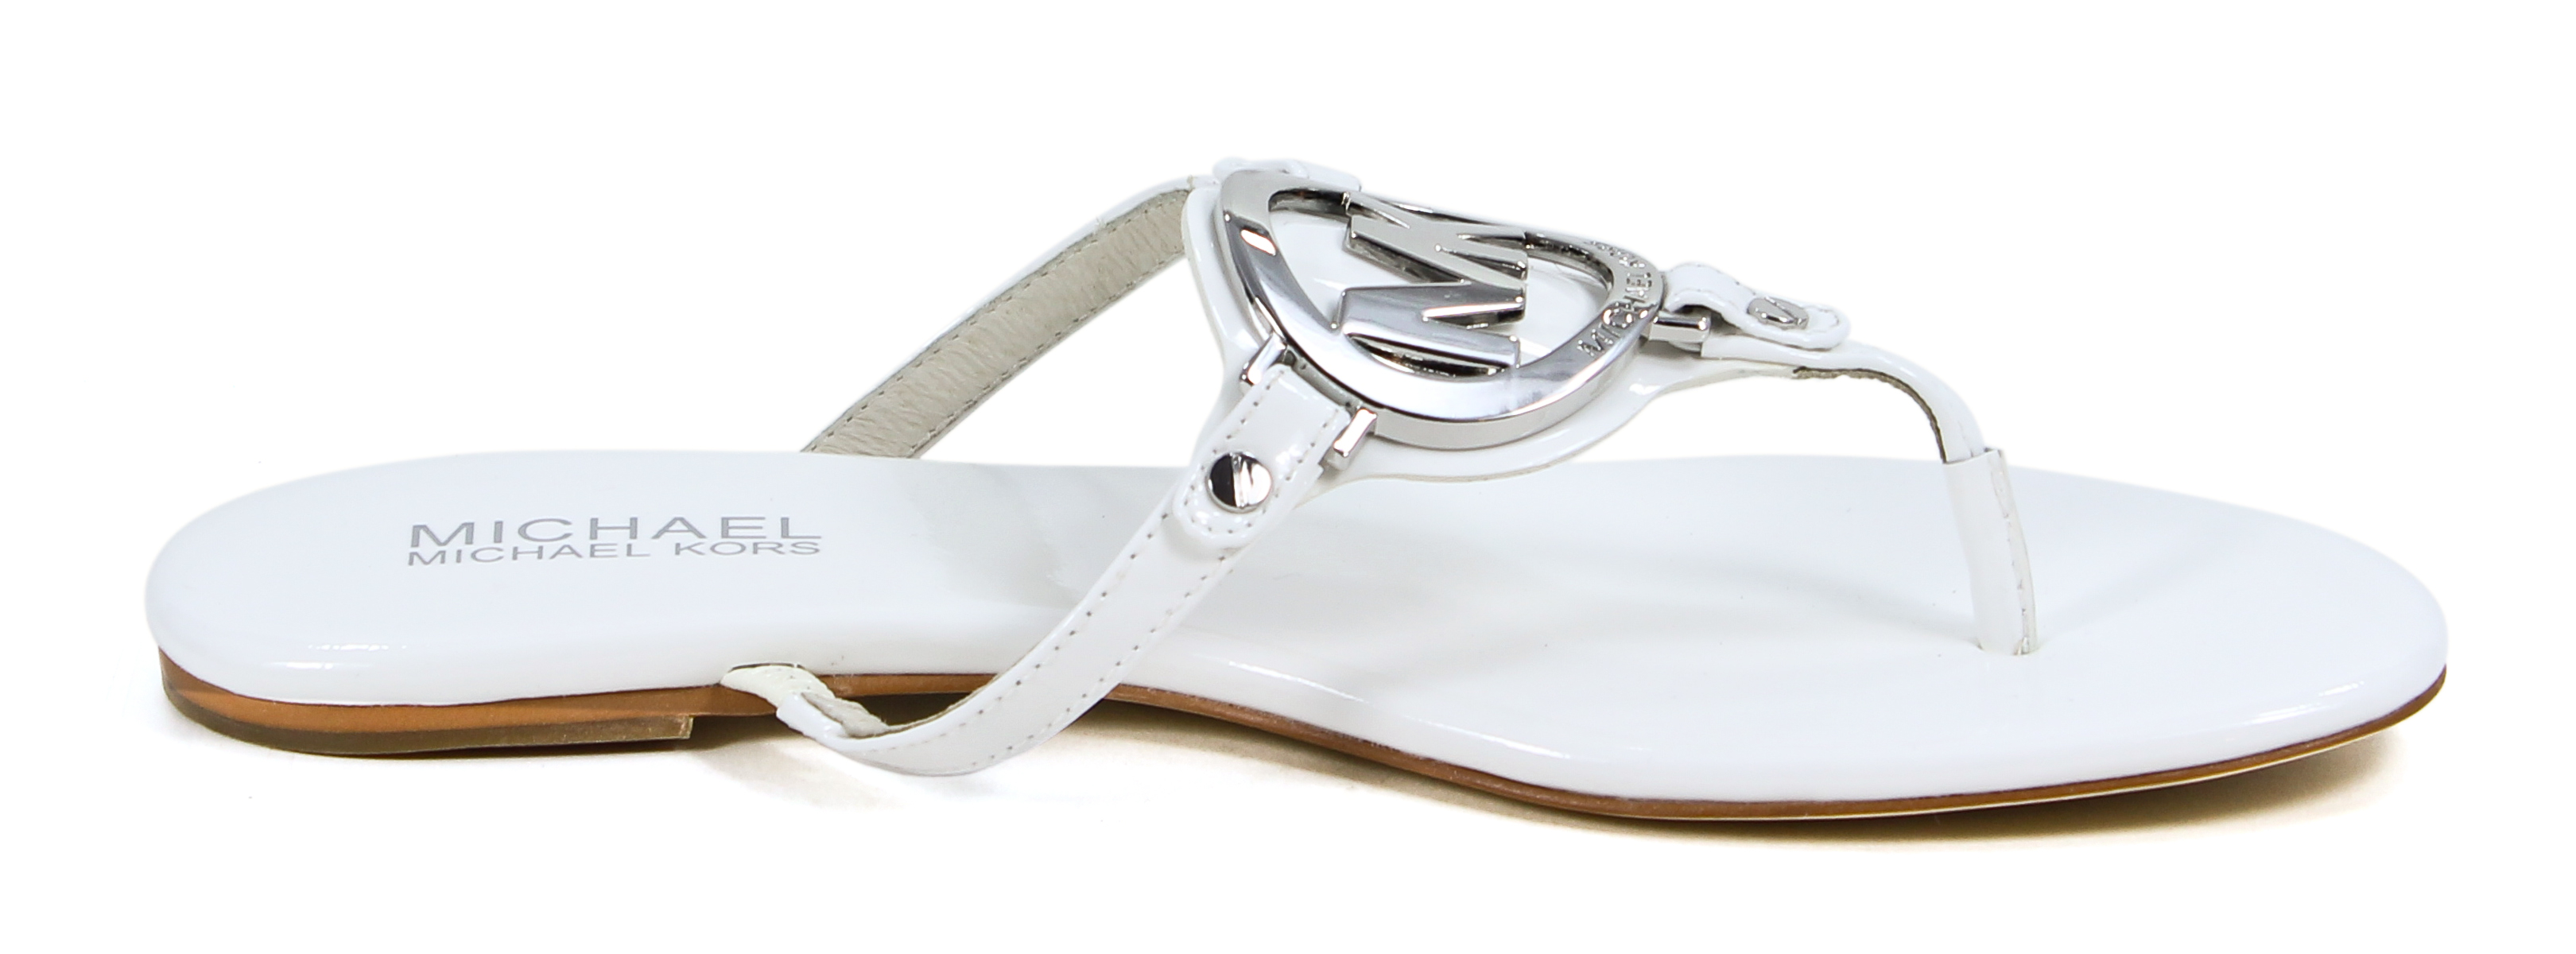 Michael Kors Optic White Leather Melodie Thong Sandal